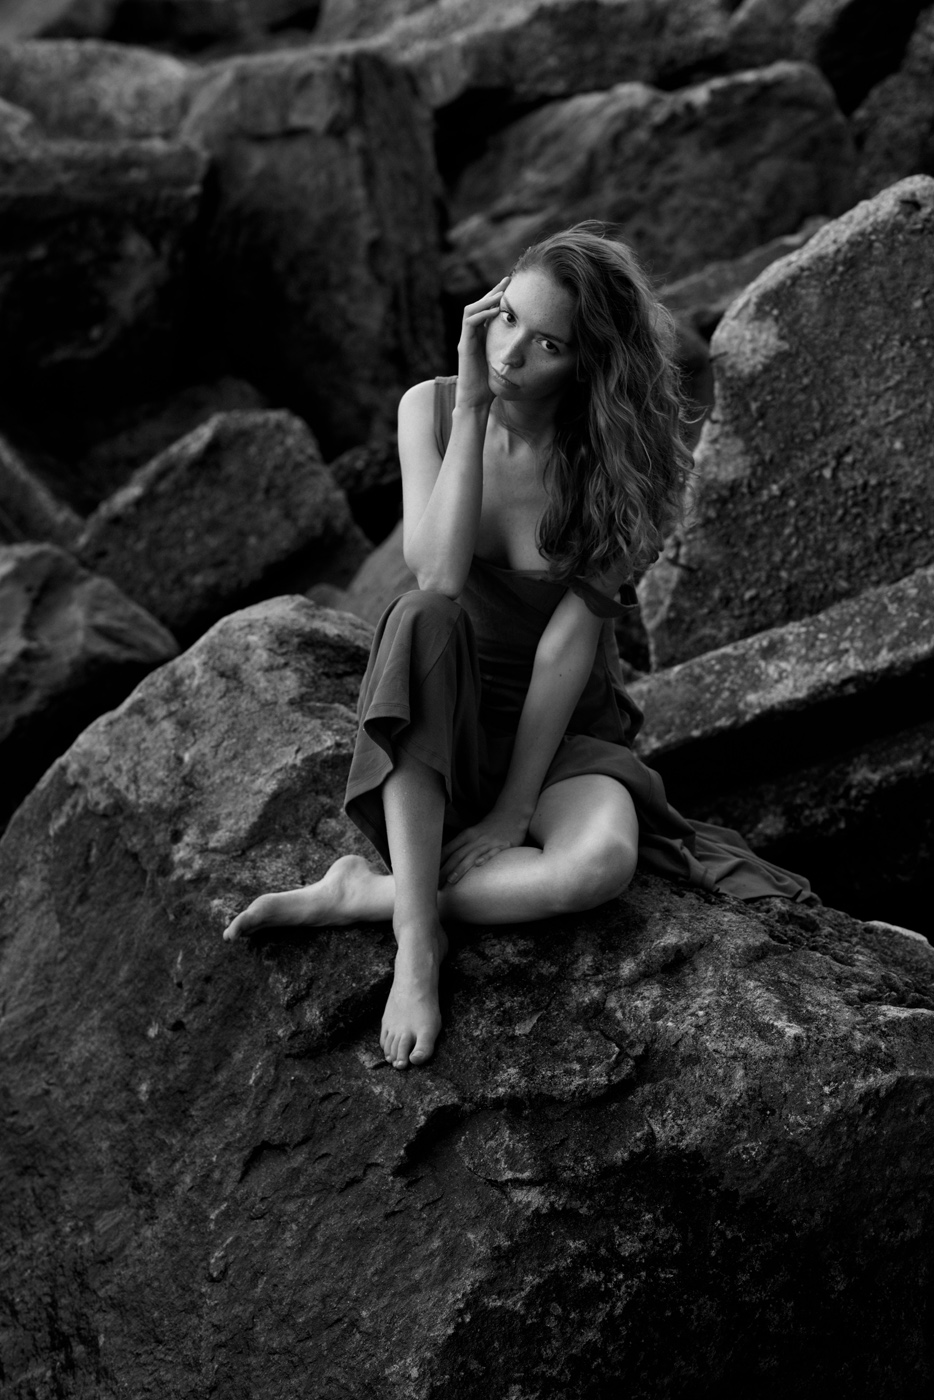 Her Secret Place Women  Lauren Rebecca Roth Anna Komarov   // lionsmag.com - premium nude photography magazine